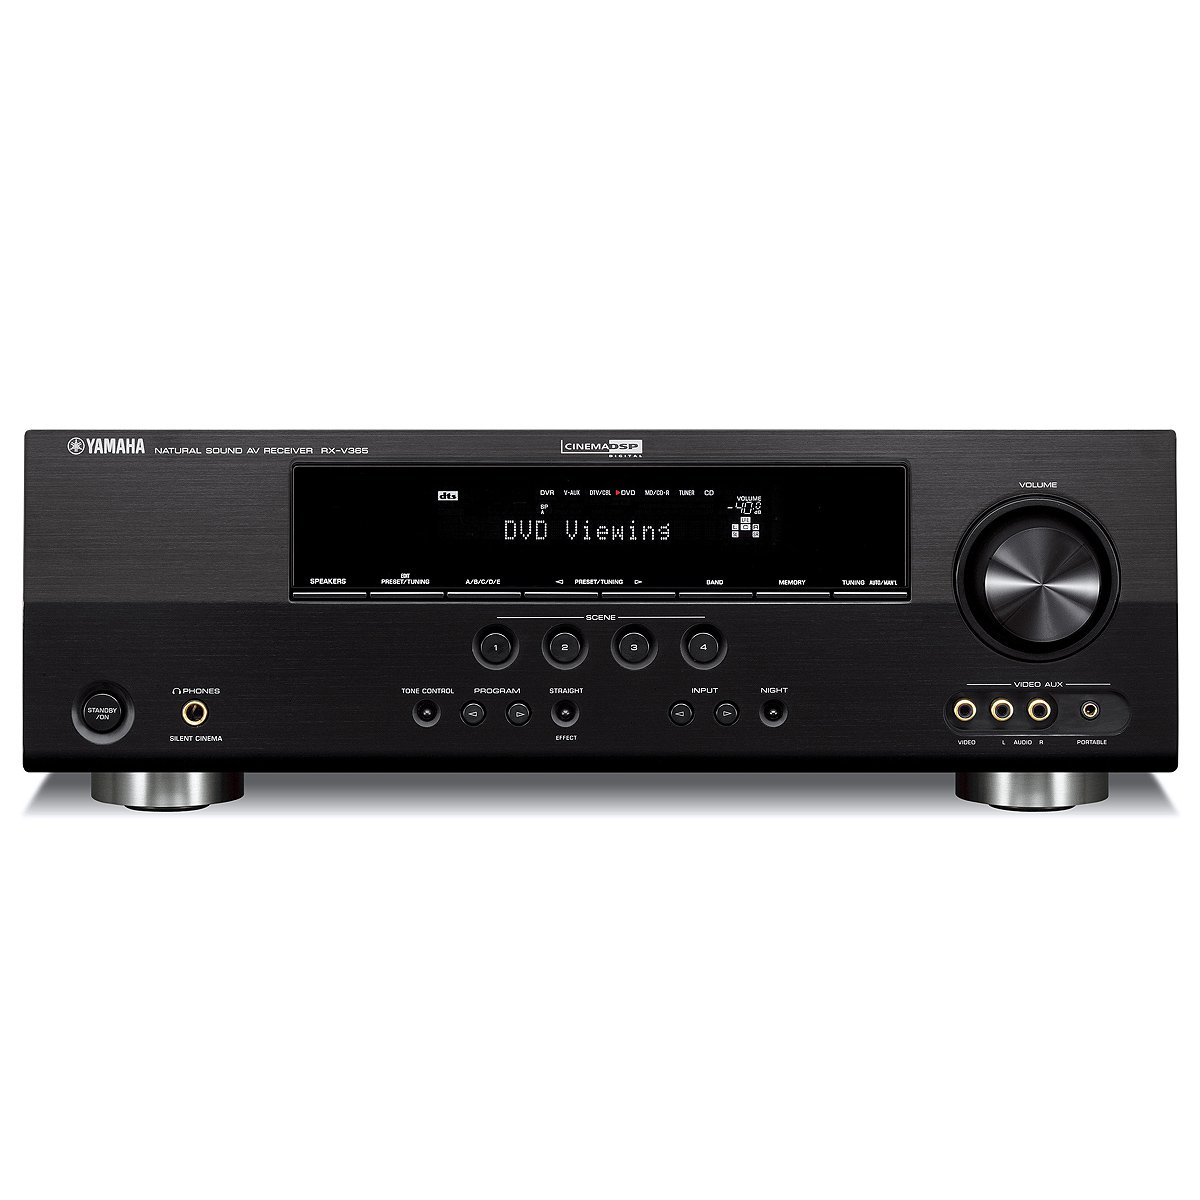 FOR SALE: FOR SALE: Brand new Yamaha RXV-365 5.1 channel Receiver with HDMI